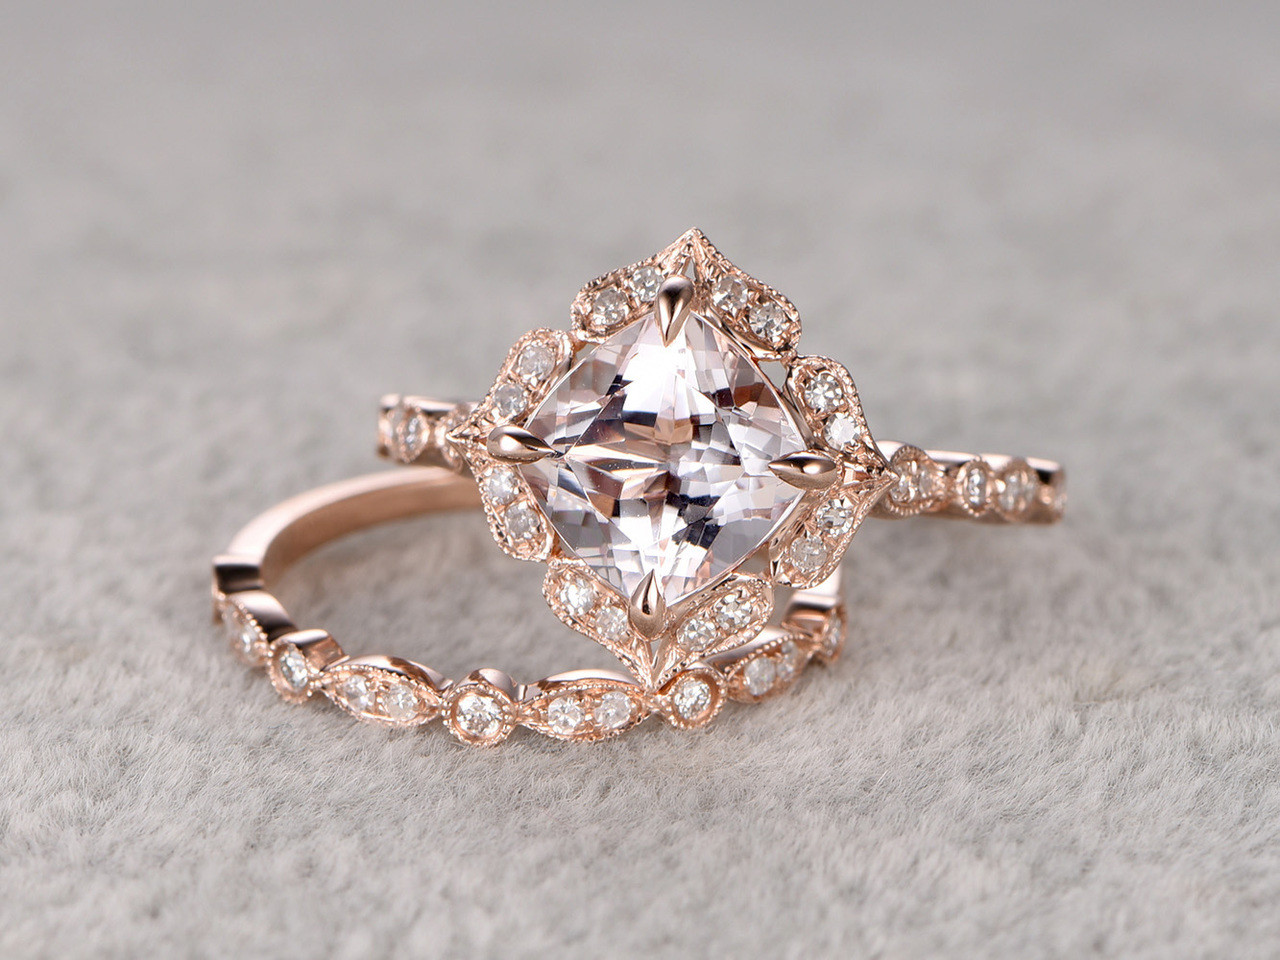 8mm cushion morganite wedding set diamond bridal ring 14k